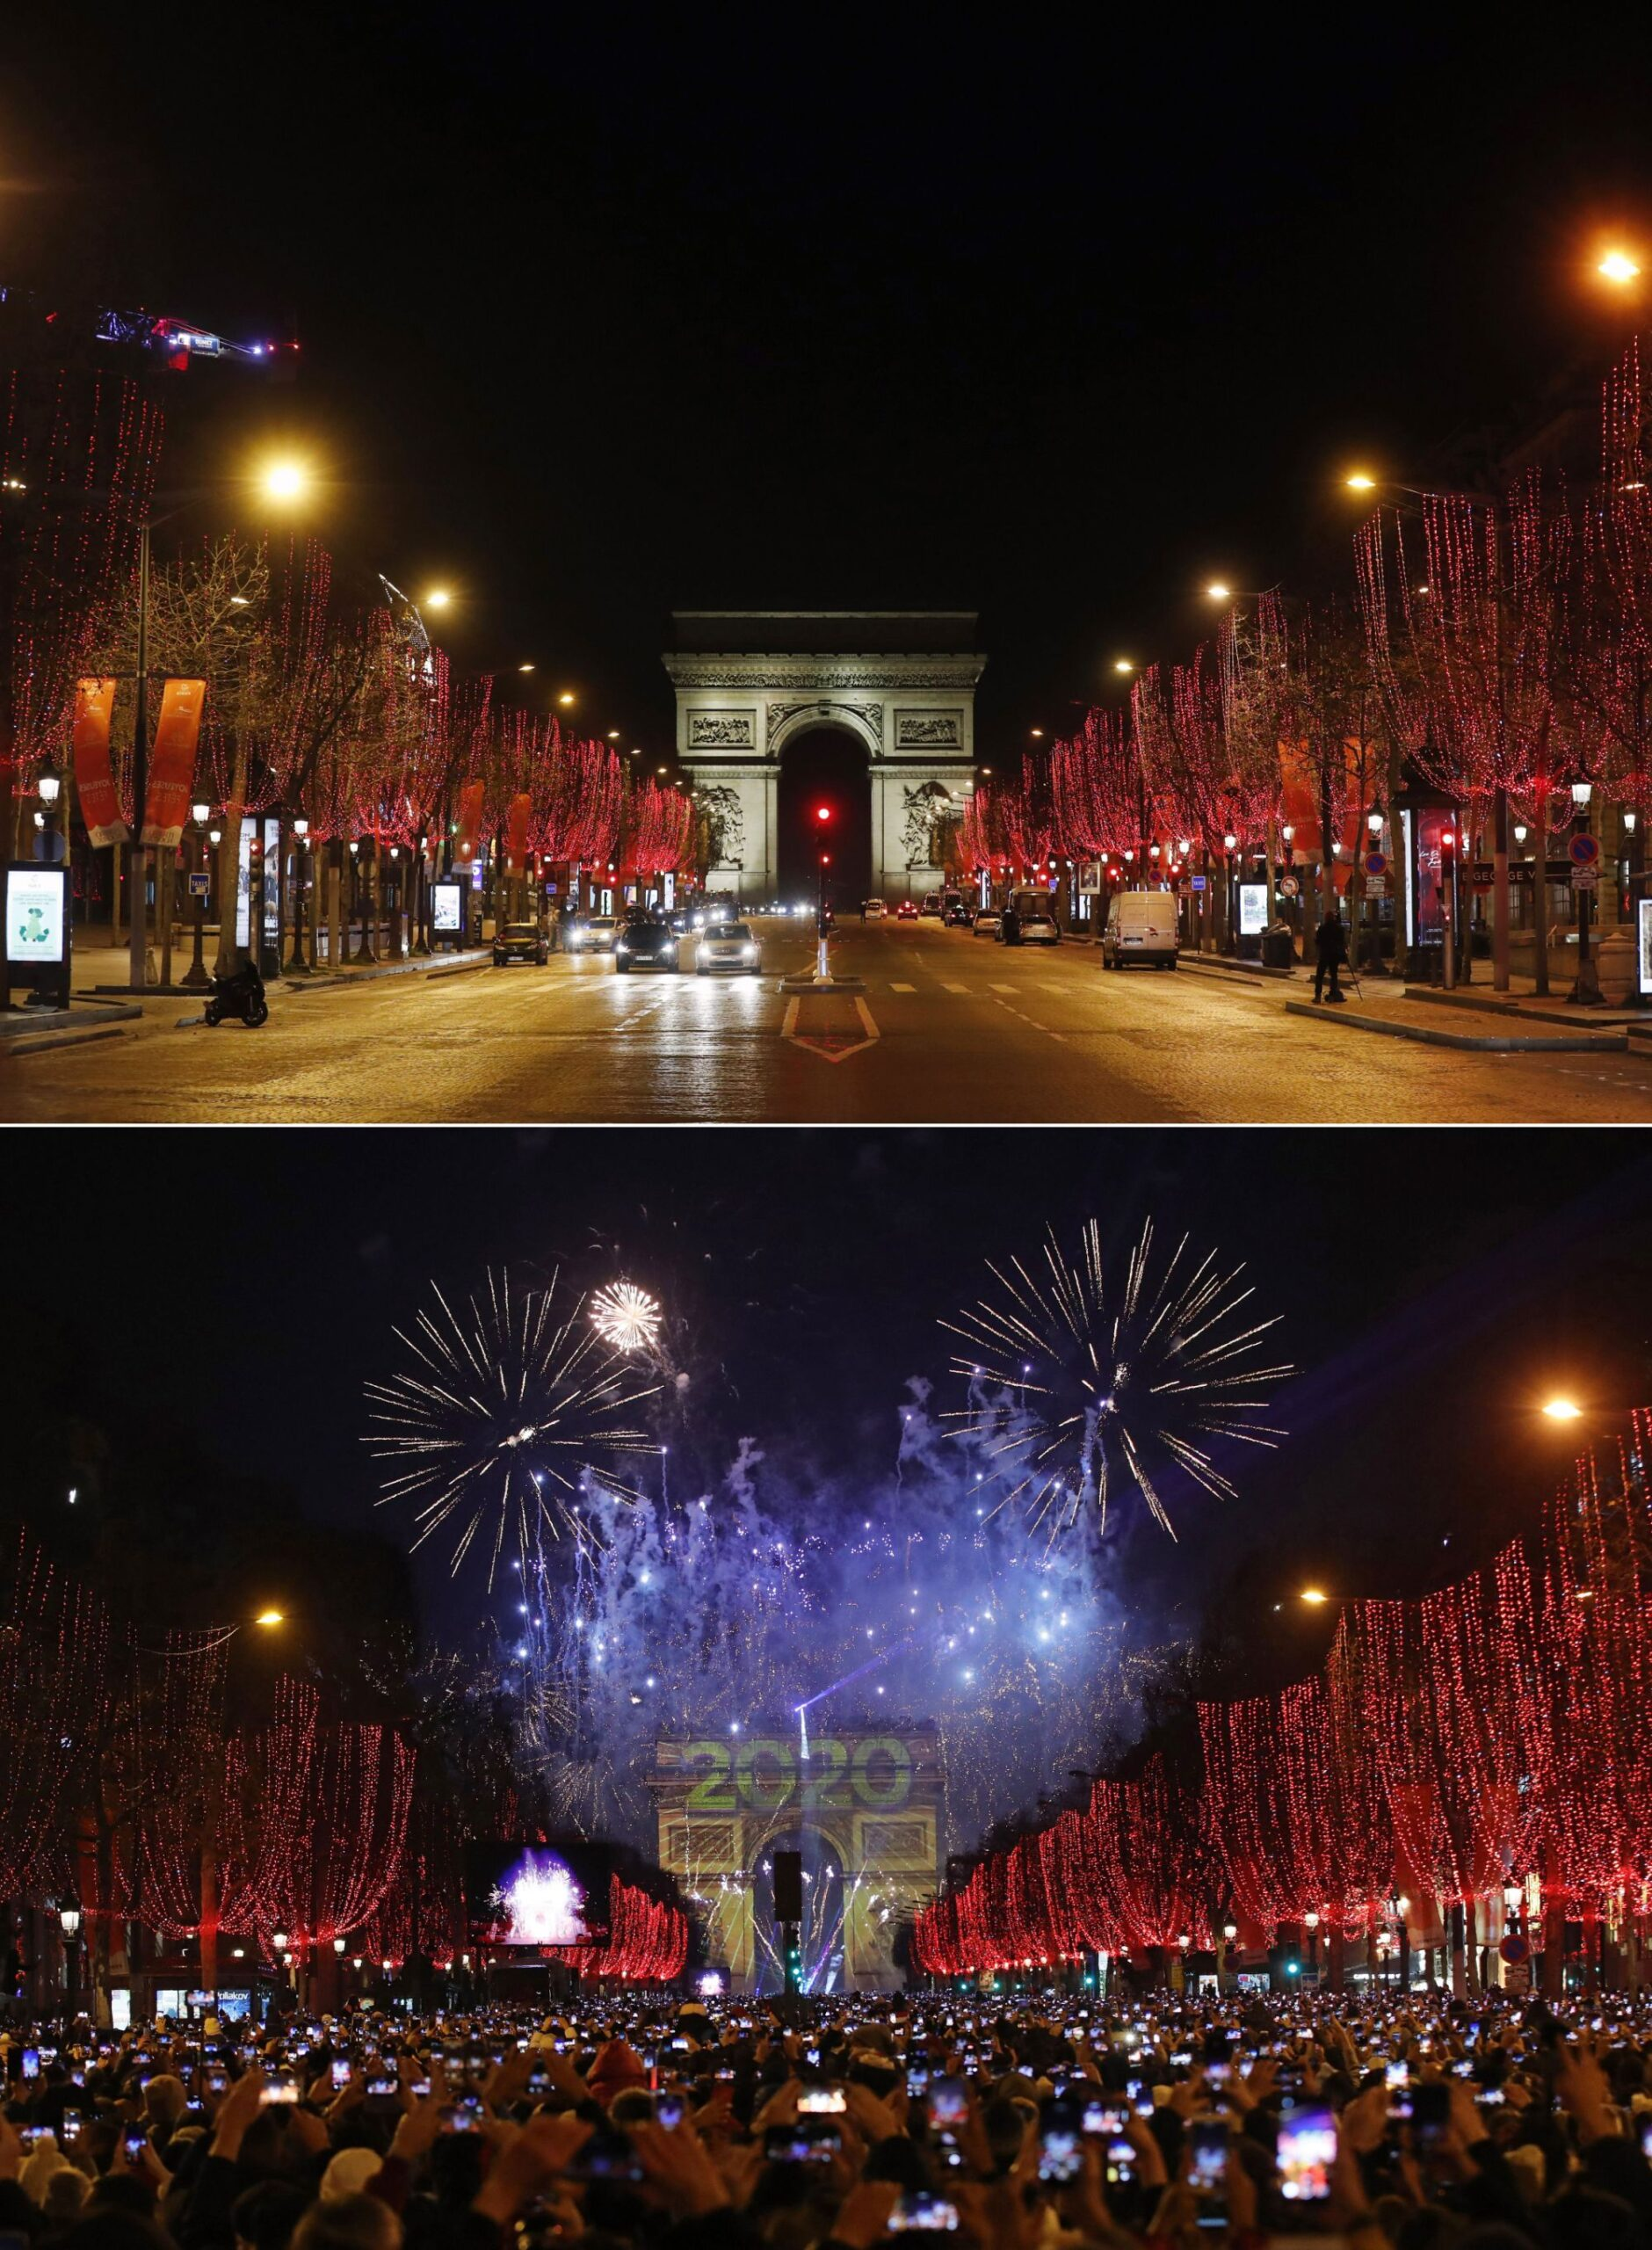 AP PHOTOS: Then-and-now images show New Year's Eve contrast